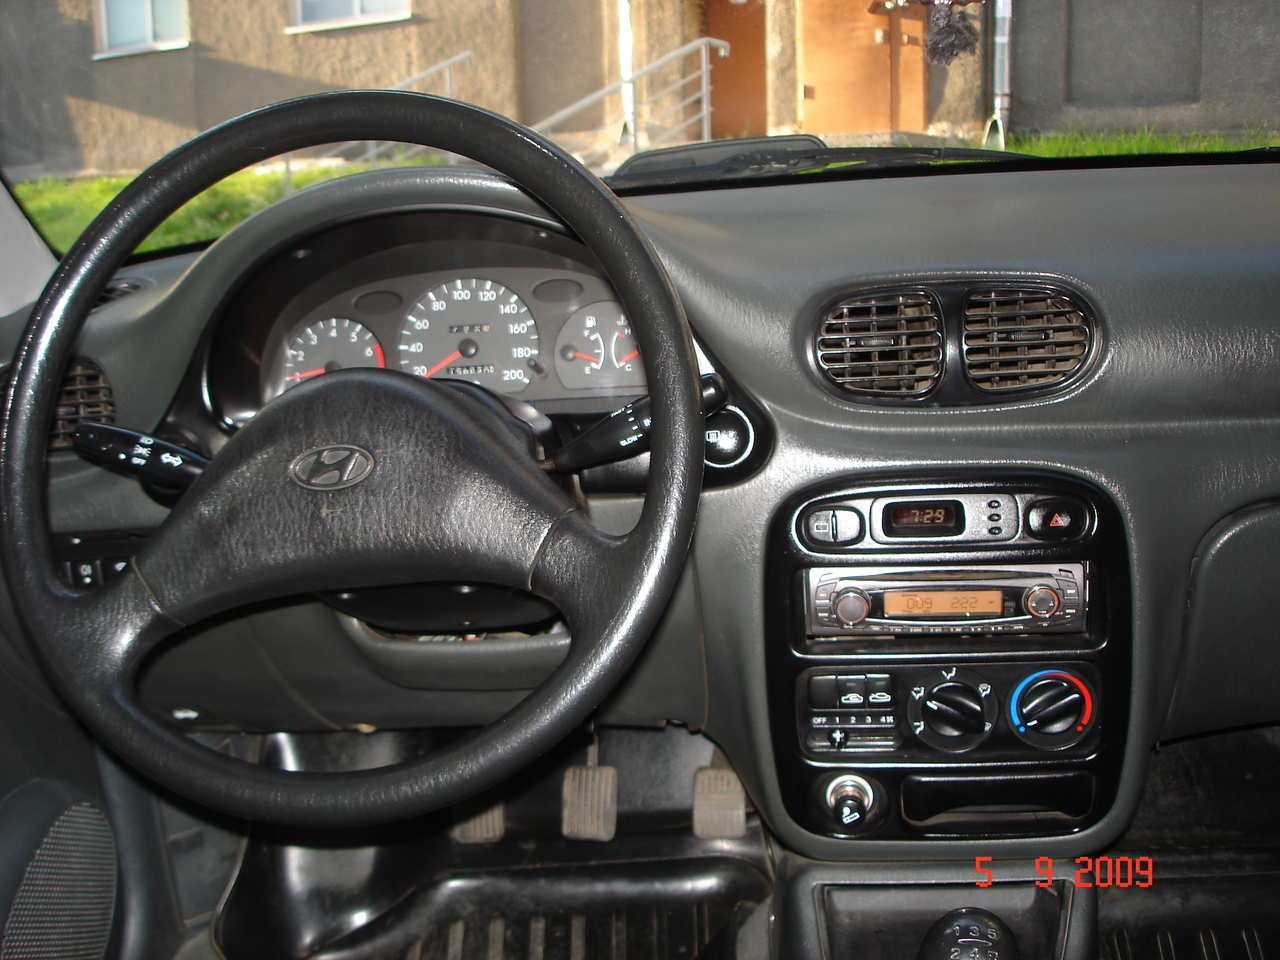 1996 hyundai accent photos 1 5 gasoline ff manual for sale rh cars directory net manual de usuario hyundai accent 1996 manual de taller hyundai accent 1996